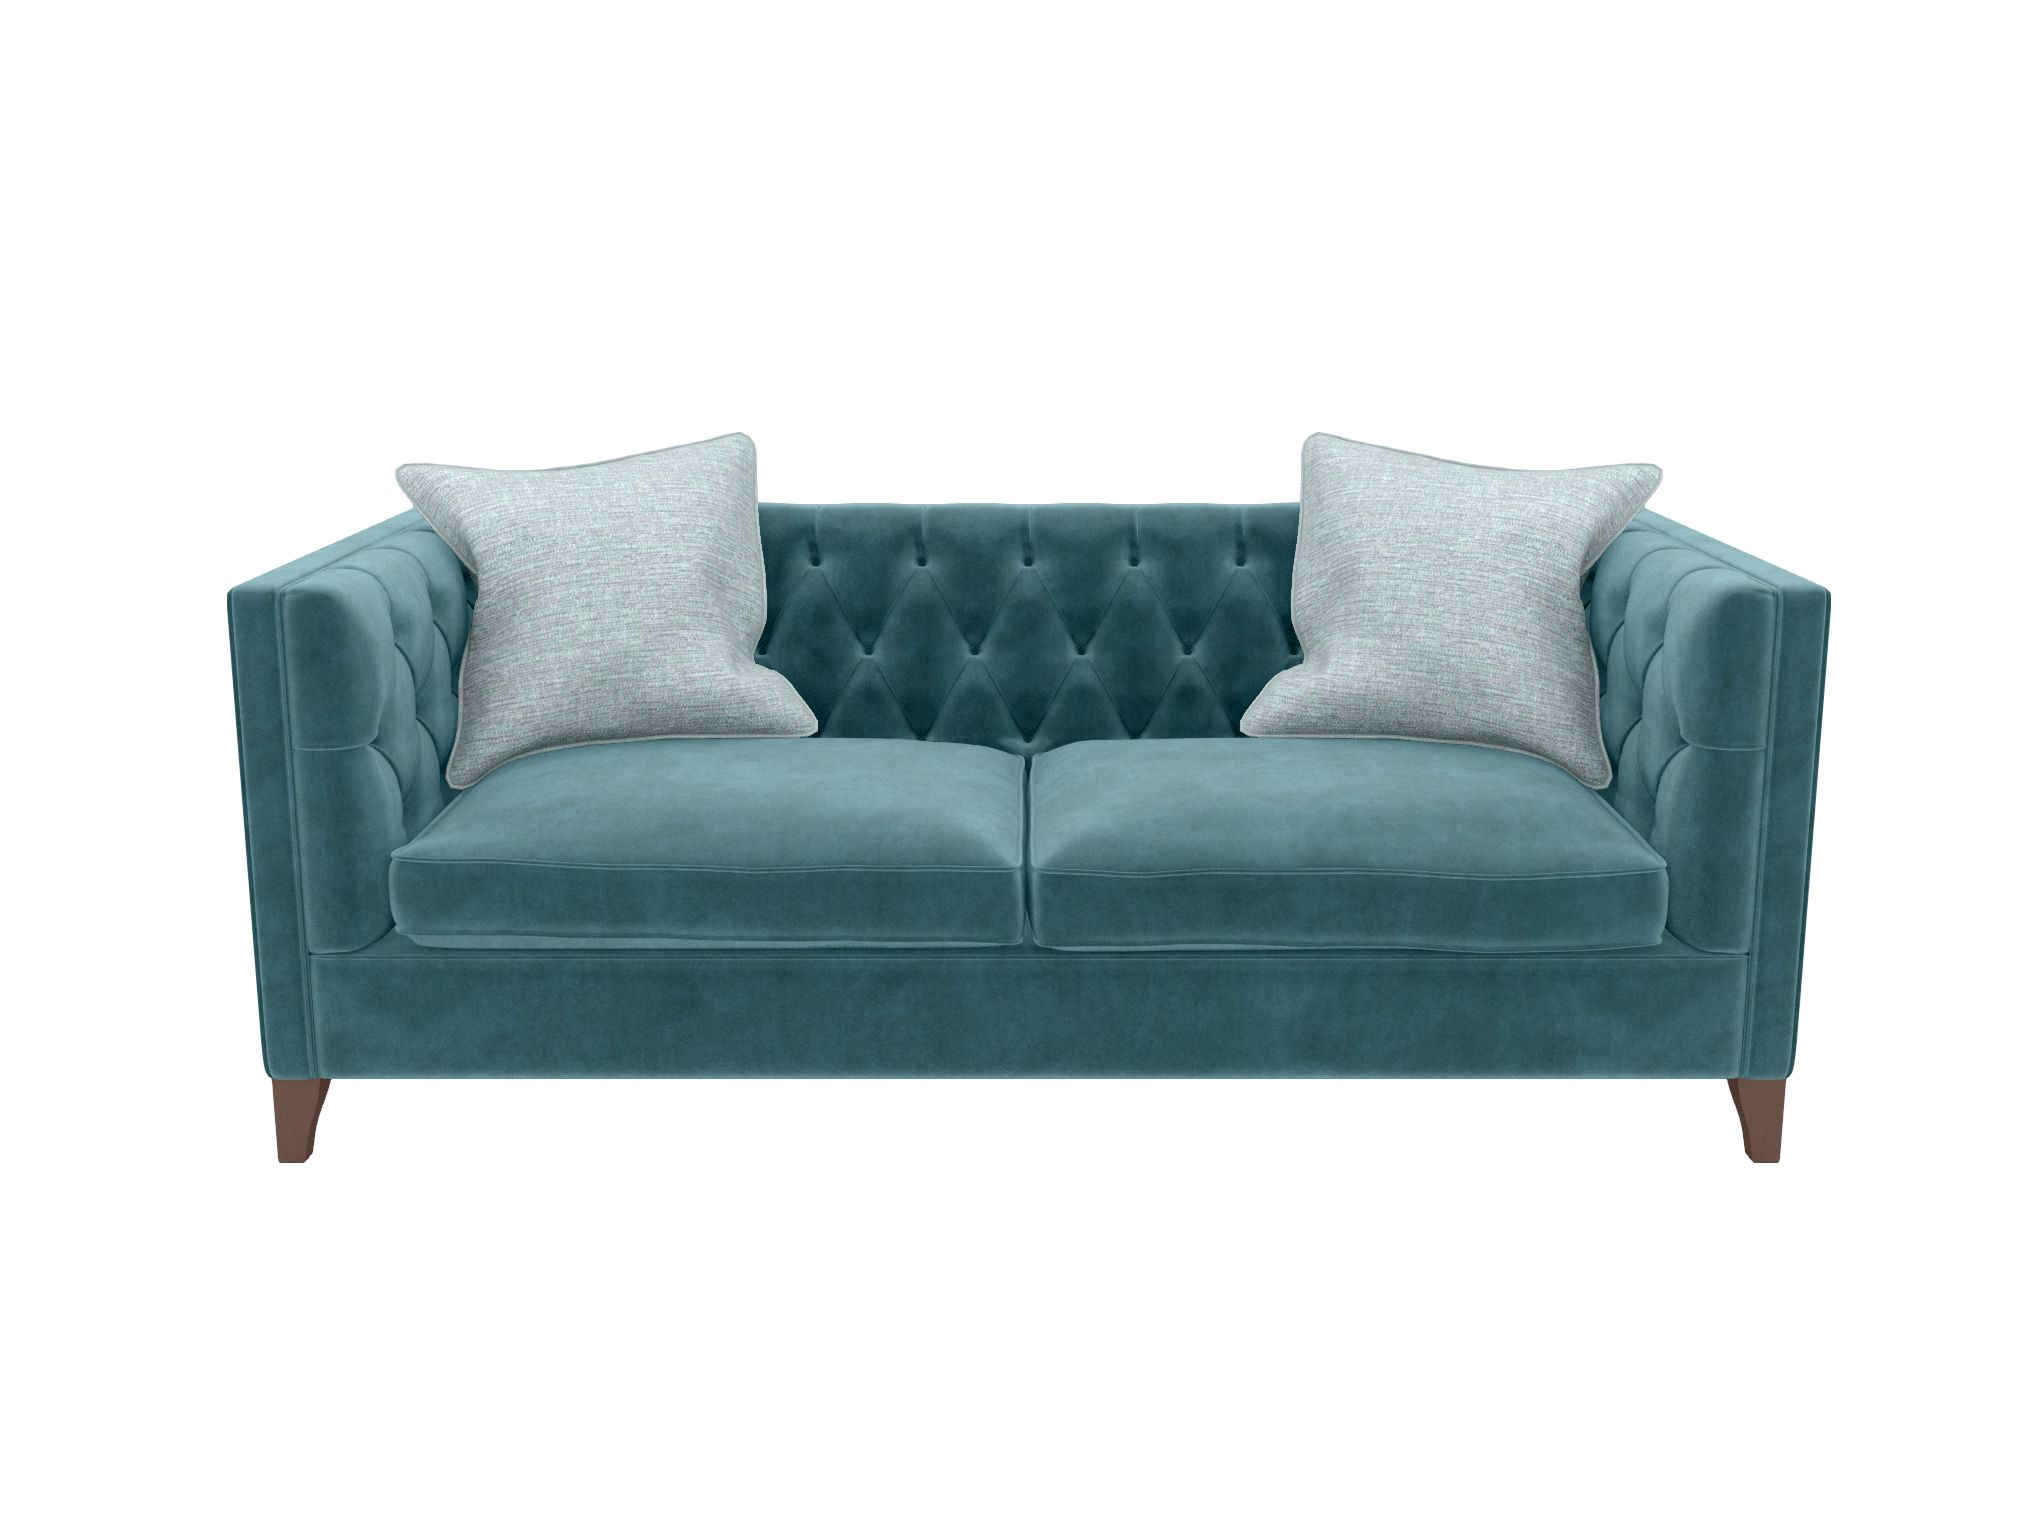 Sofa S 7 Best Velvet Sofa Styles To Buy For Your Living Room Velvet